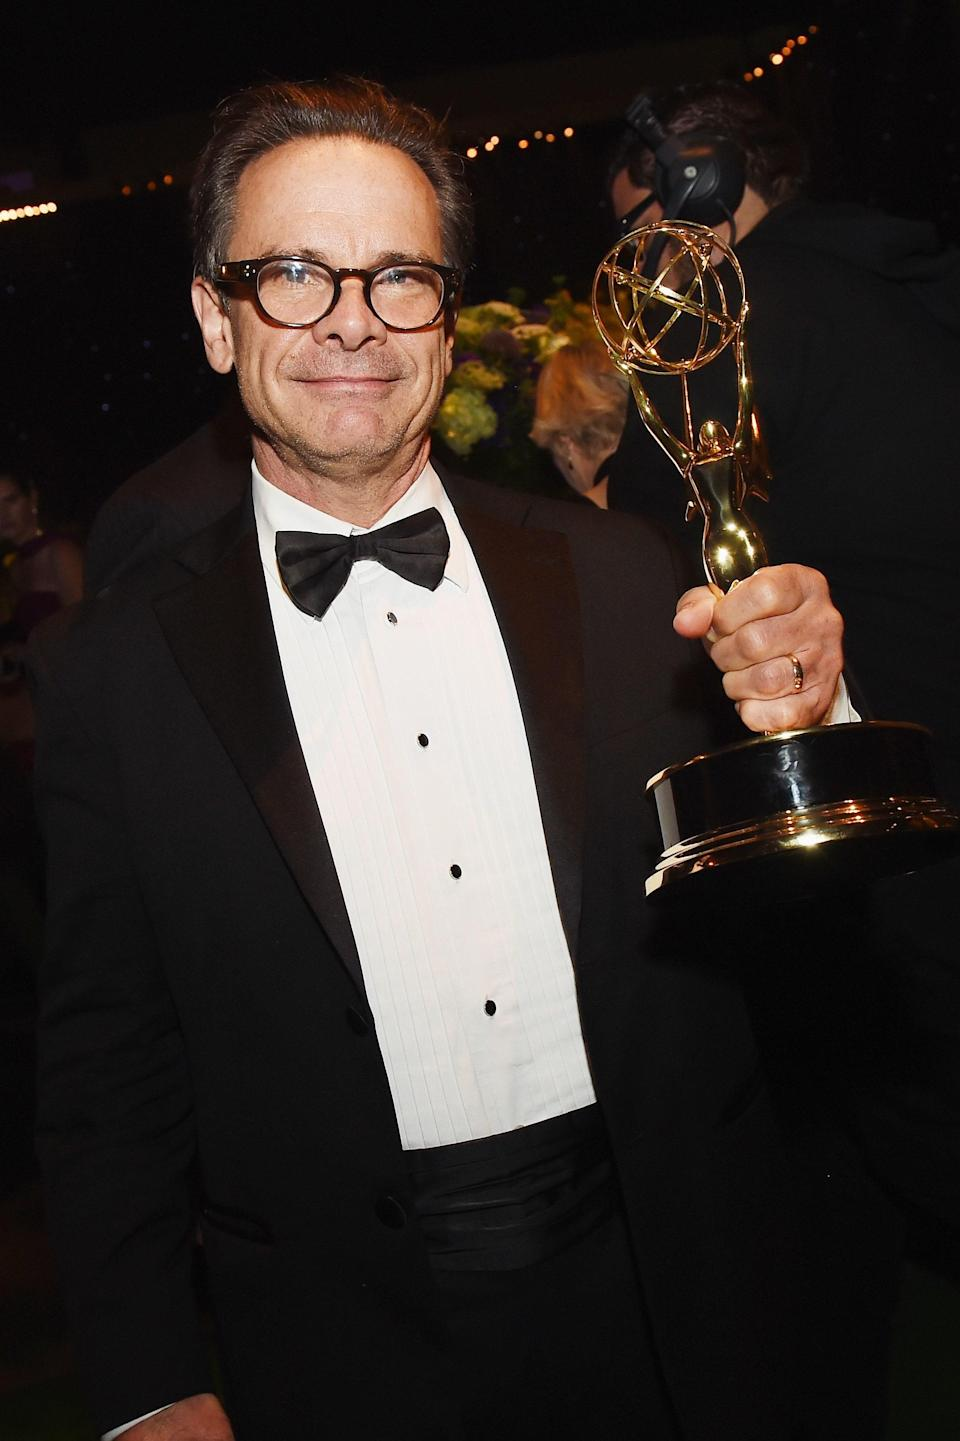 LOS ANGELES, CA - SEPTEMBER 18:  Actor Peter Scolari, winner of Outstanding Guest Actor in a Comedy Series for 'Girls,' attends the 68th Annual Primetime Emmy Awards Governors Ball at Microsoft Theater on September 18, 2016 in Los Angeles, California.  (Photo by Kevin Winter/Getty Images)